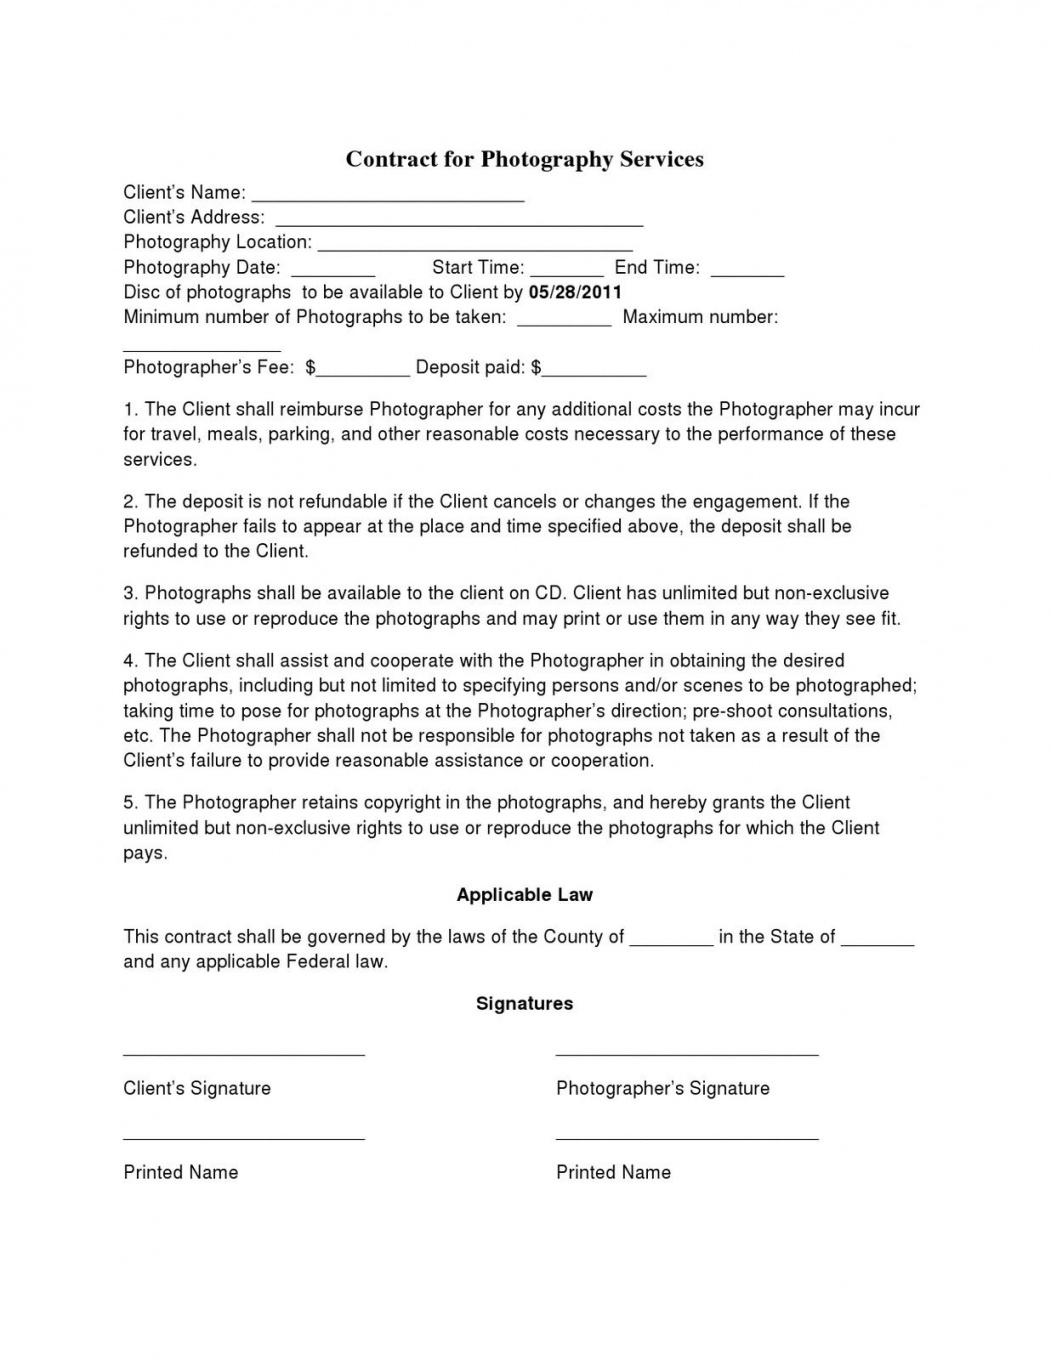 here the basic wedding photography contracts  photography contract template senior portrait photography contract template